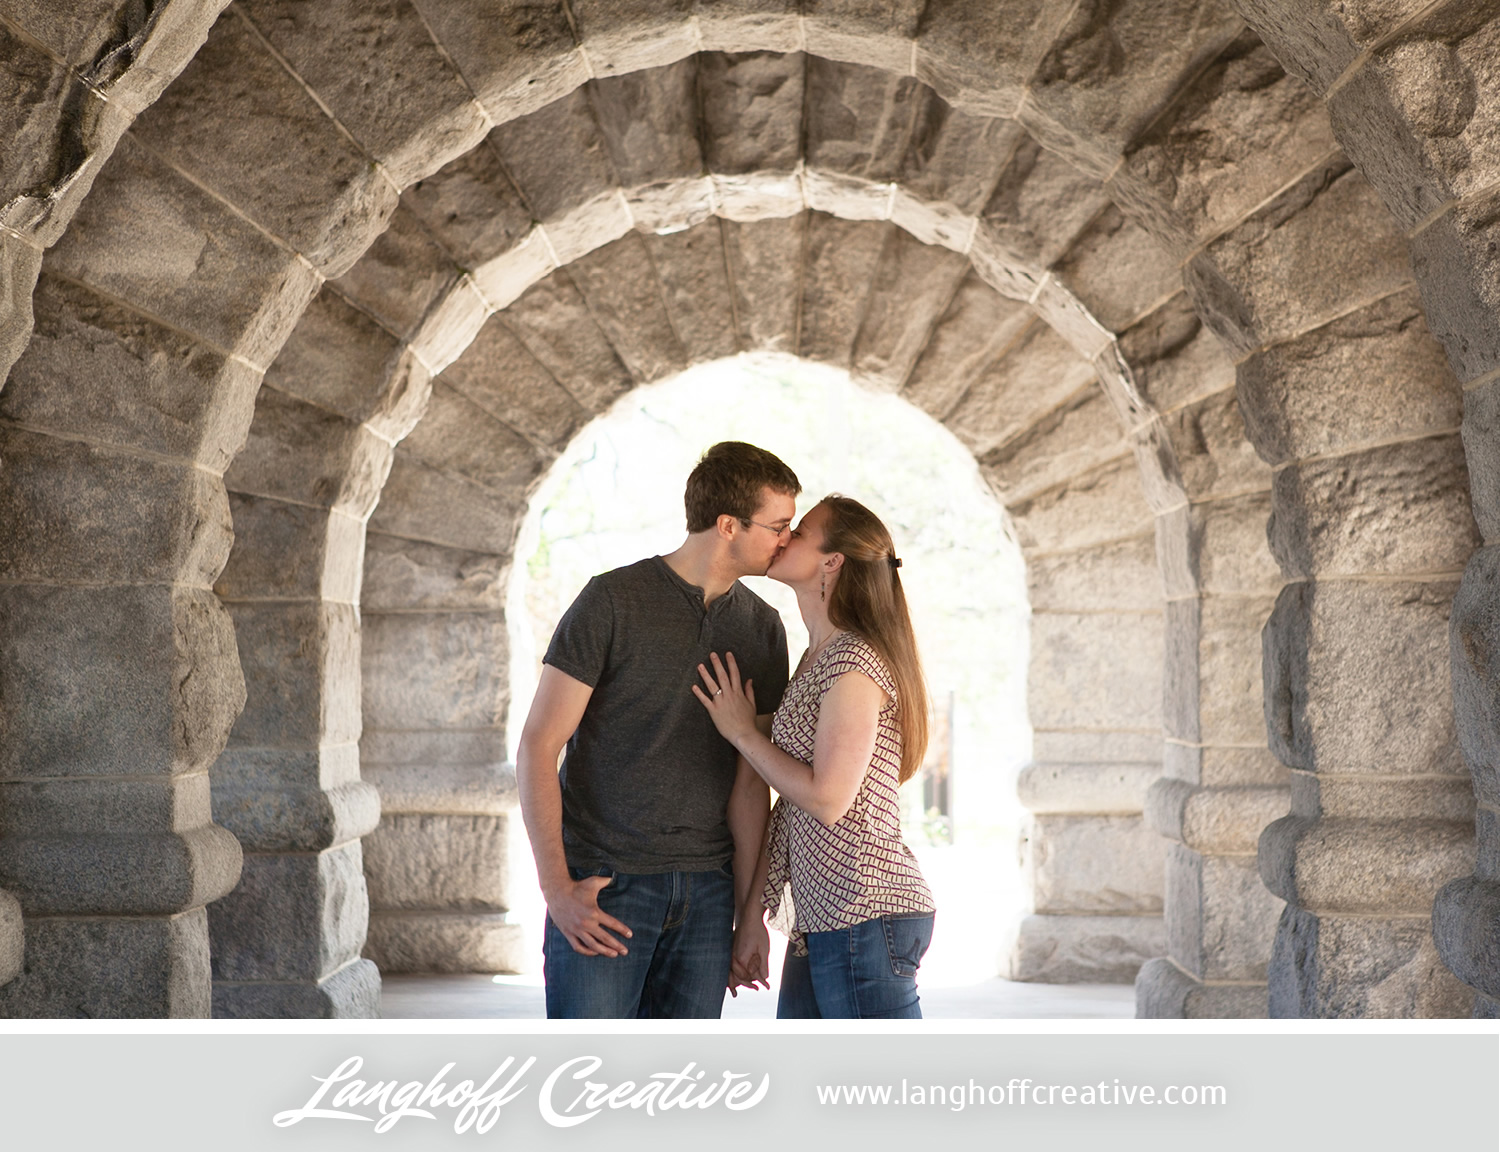 ChicagoEngagement-LincolnParkZoo-Engaged-LanghoffCreative-DestinationWeddingPhotographers-2014-ZacRachel-20-photo.jpg